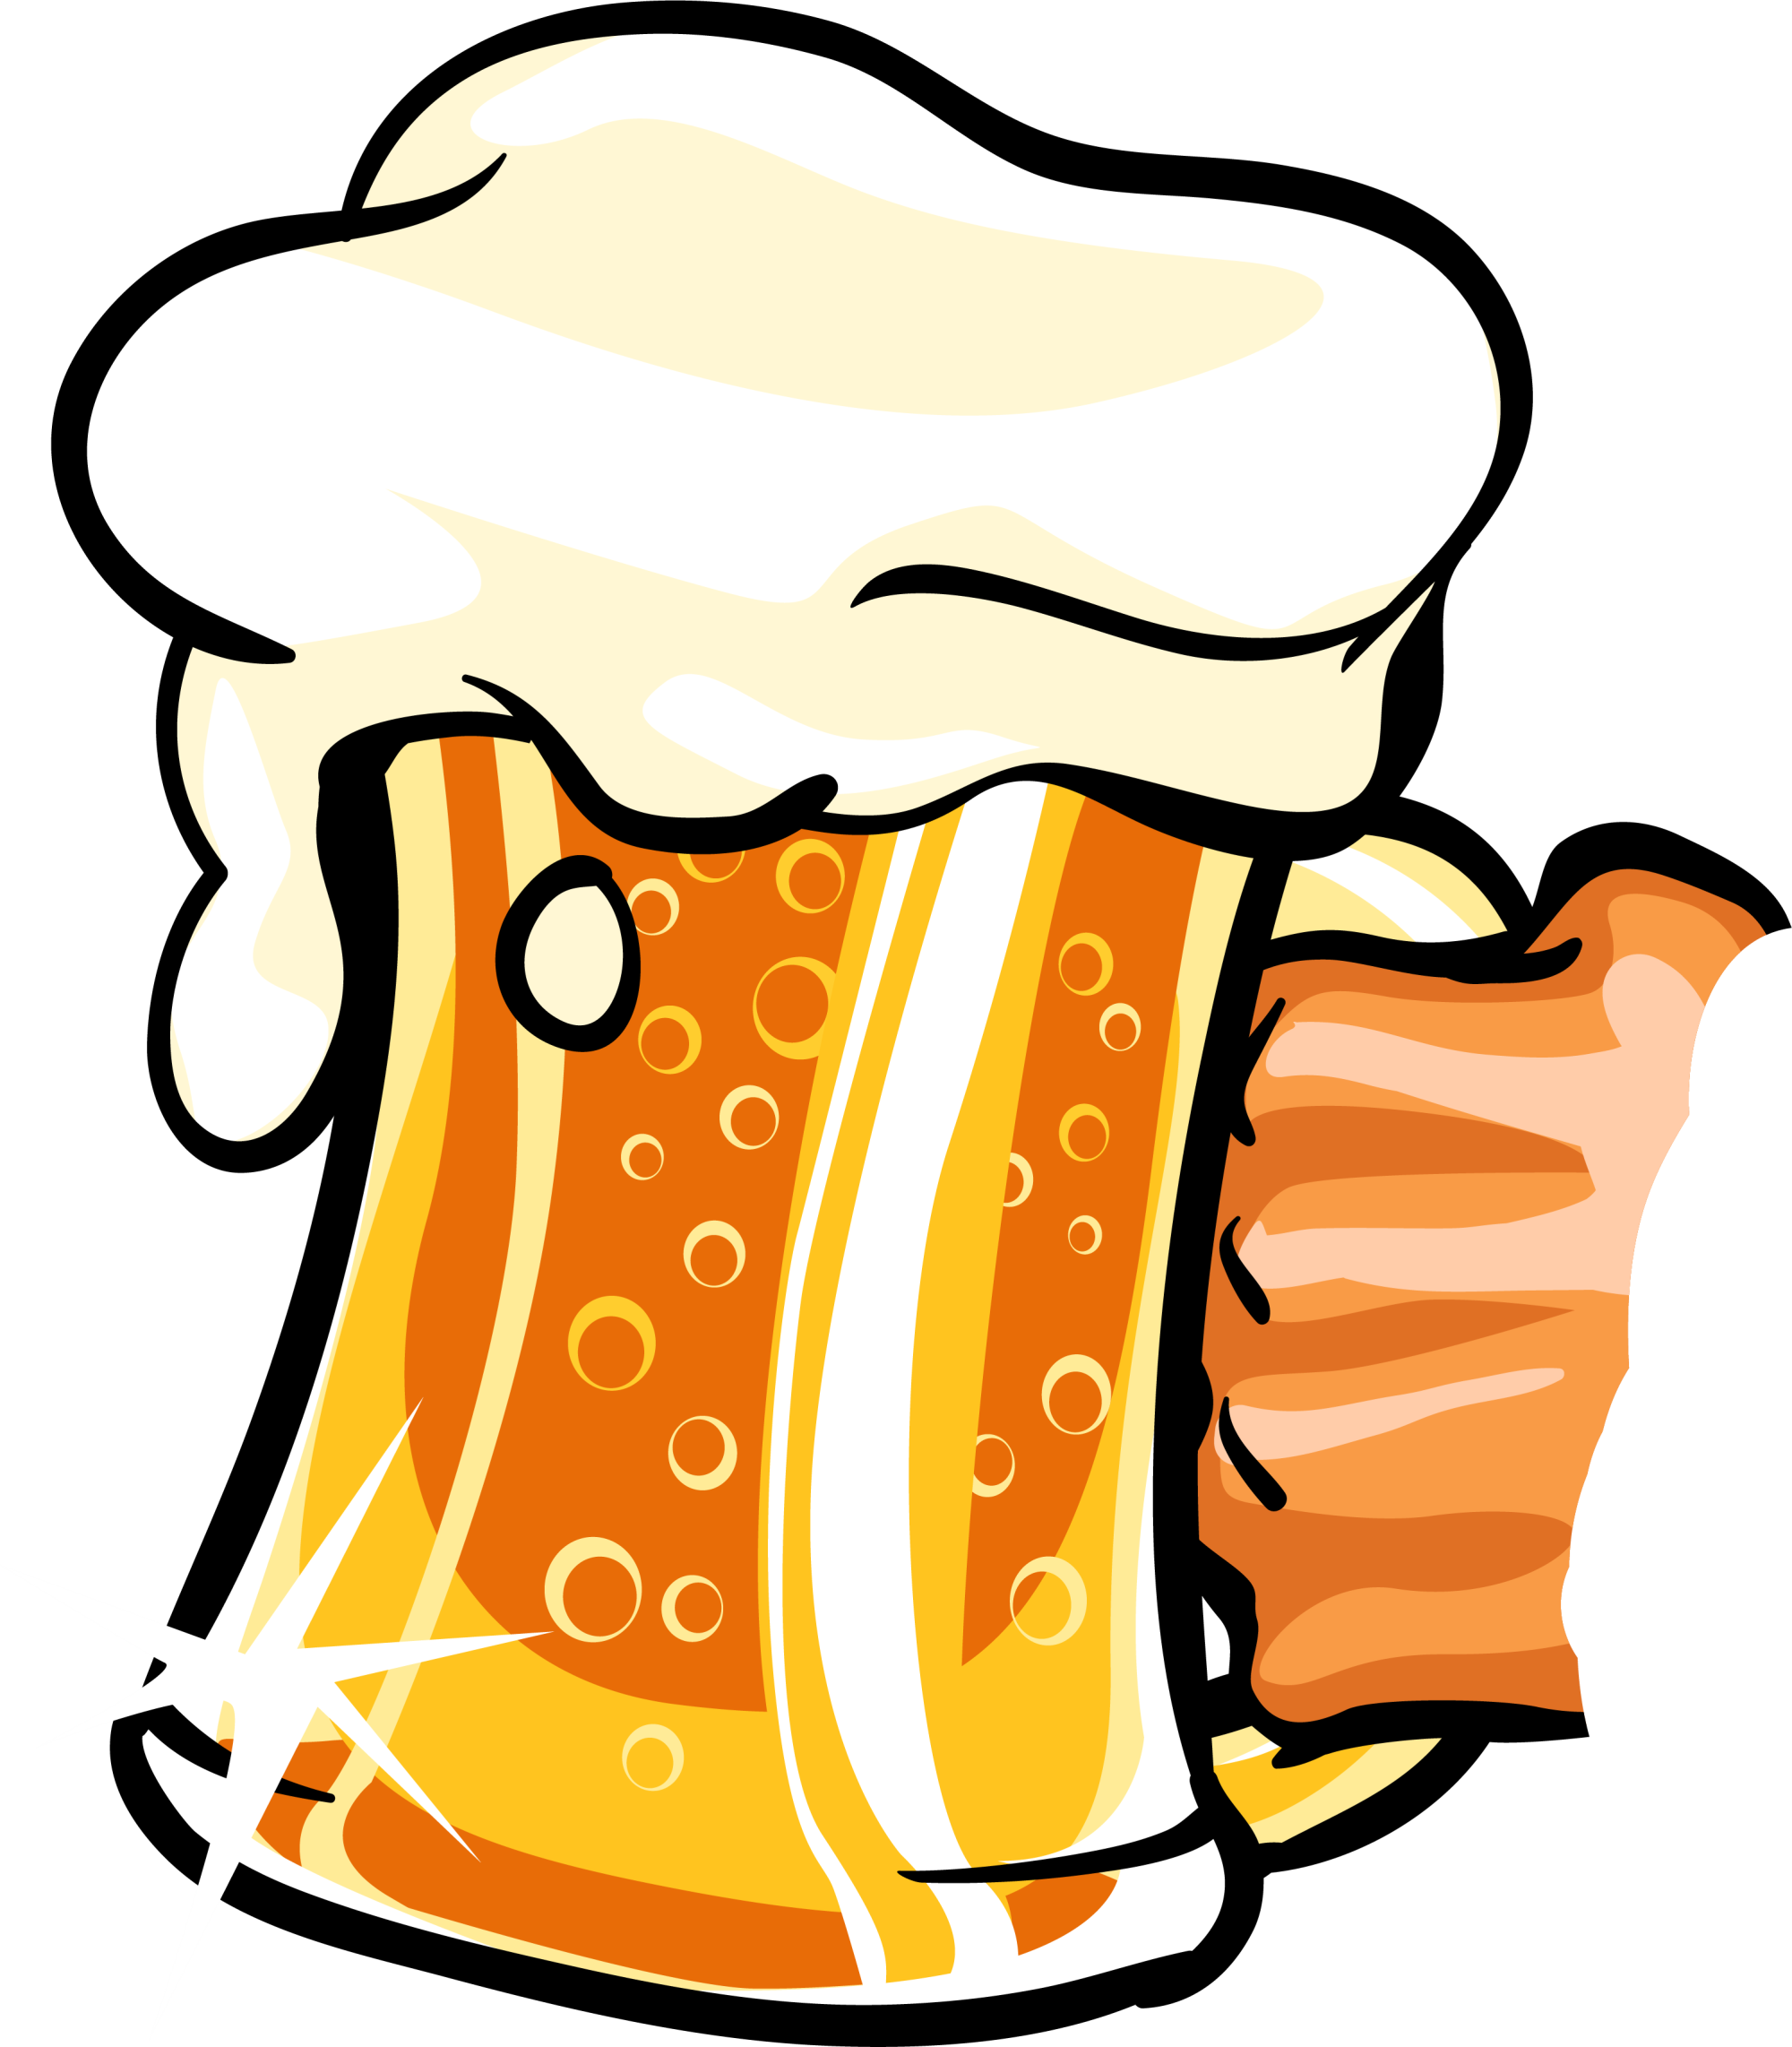 Free clipart apple beer image download Cartoon Drawing Clip art - Yellow cartoon beer 2000*2284 transprent ... image download